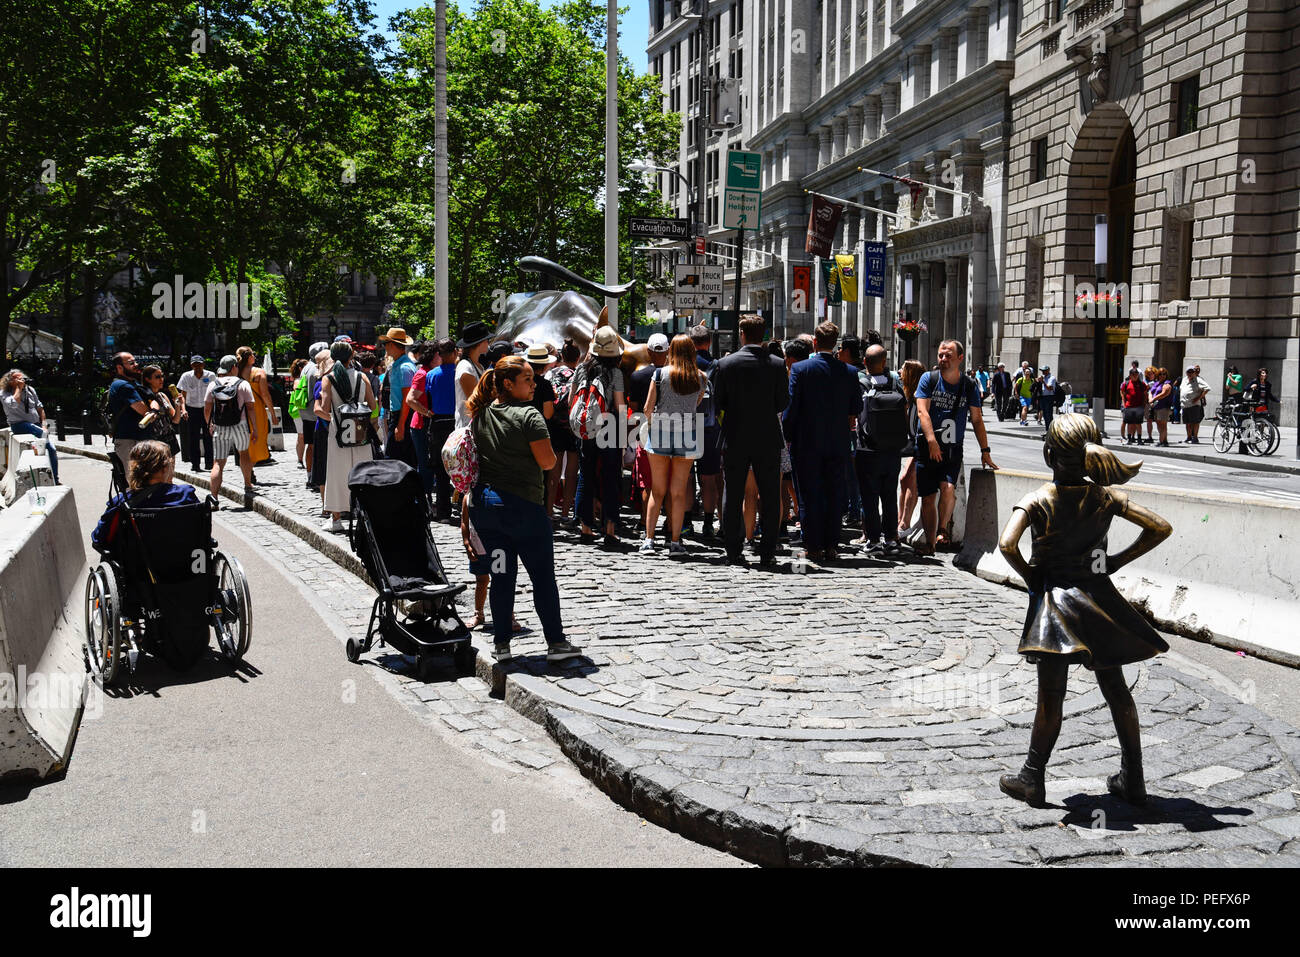 New York City, USA - June 20, 2018: Crowd of people in Charging Bull and Fearless Girl Sculptures in Financial District - Stock Image